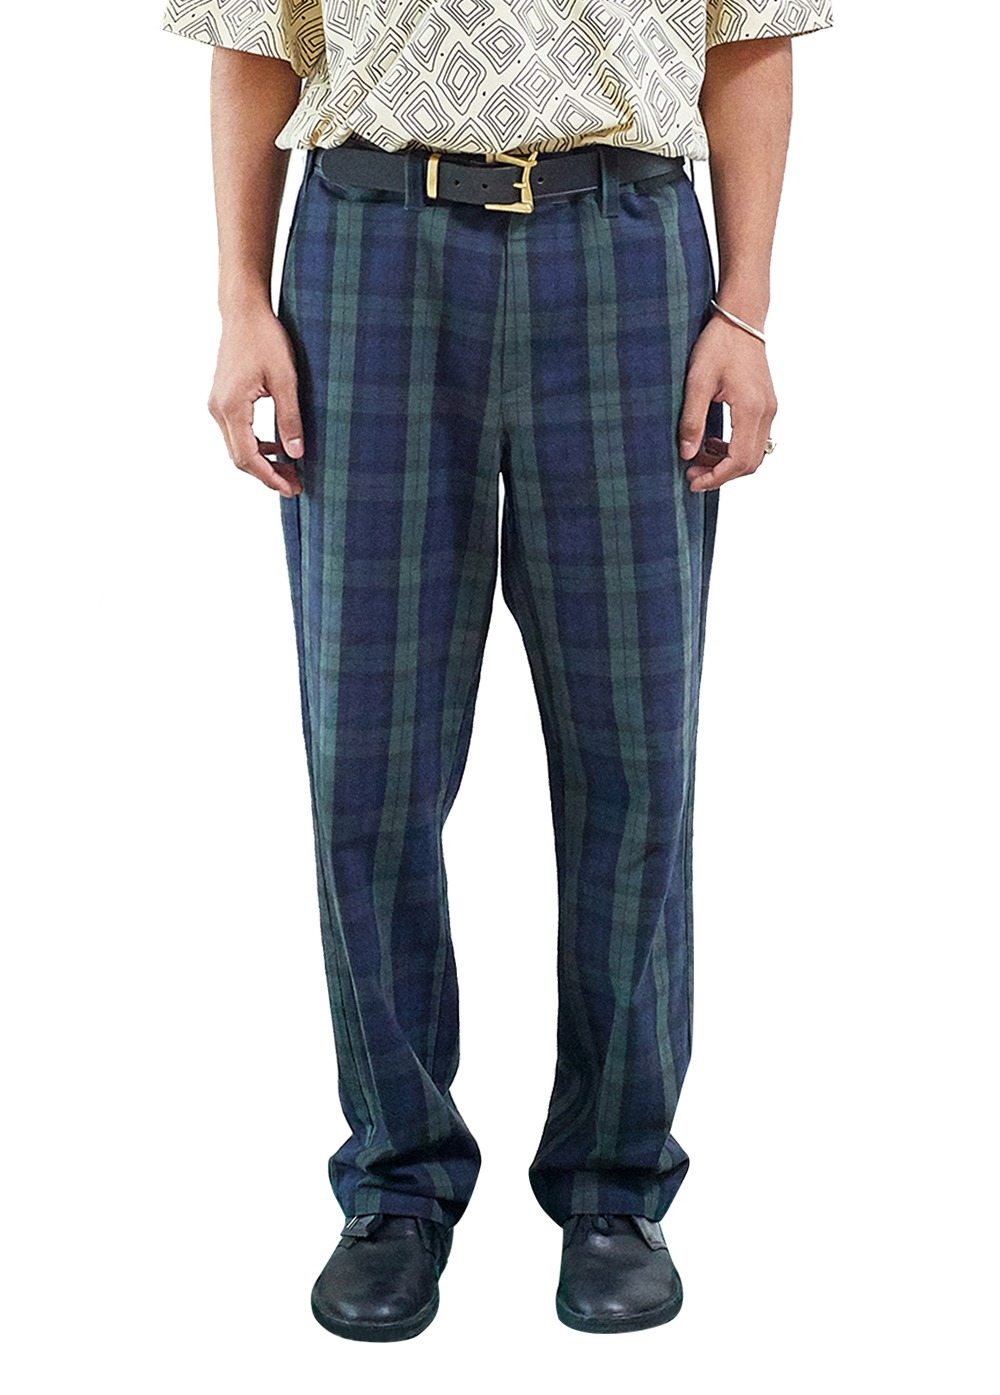 FUZZ CHECK CHINO PANTS dark green